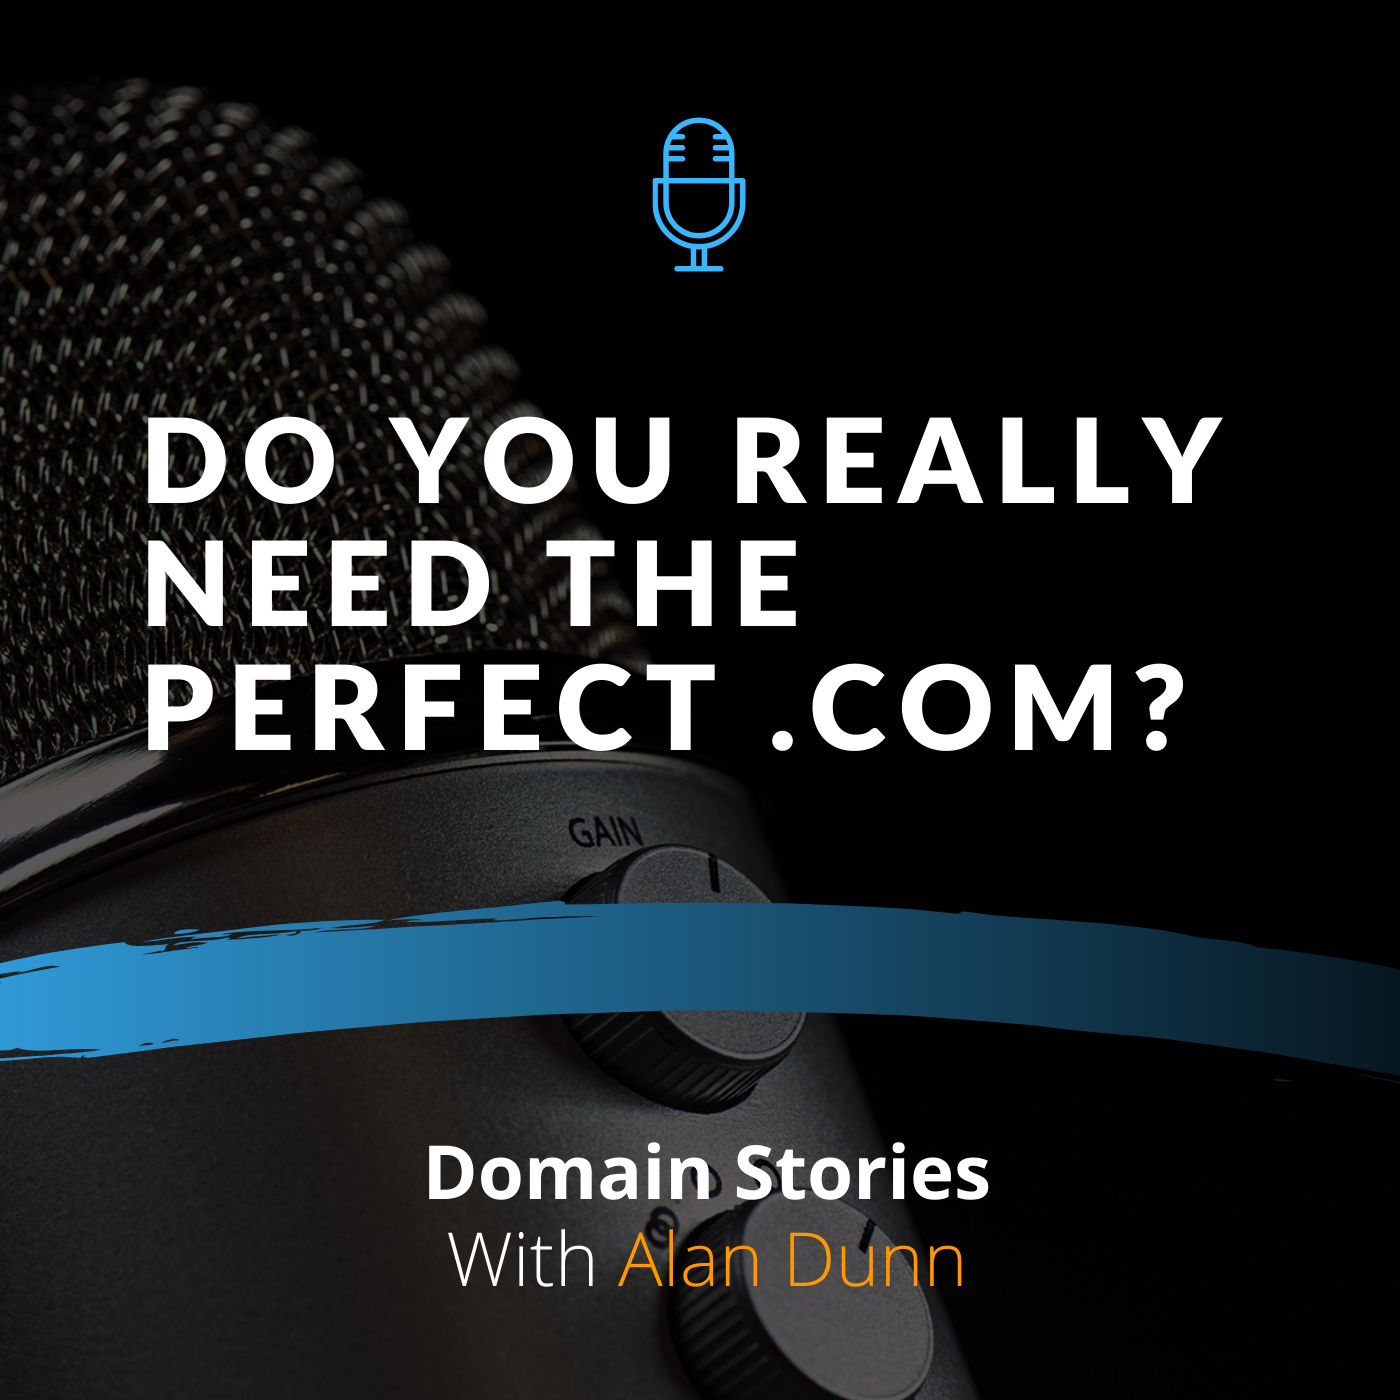 Do you really need the perfect .com domain name?